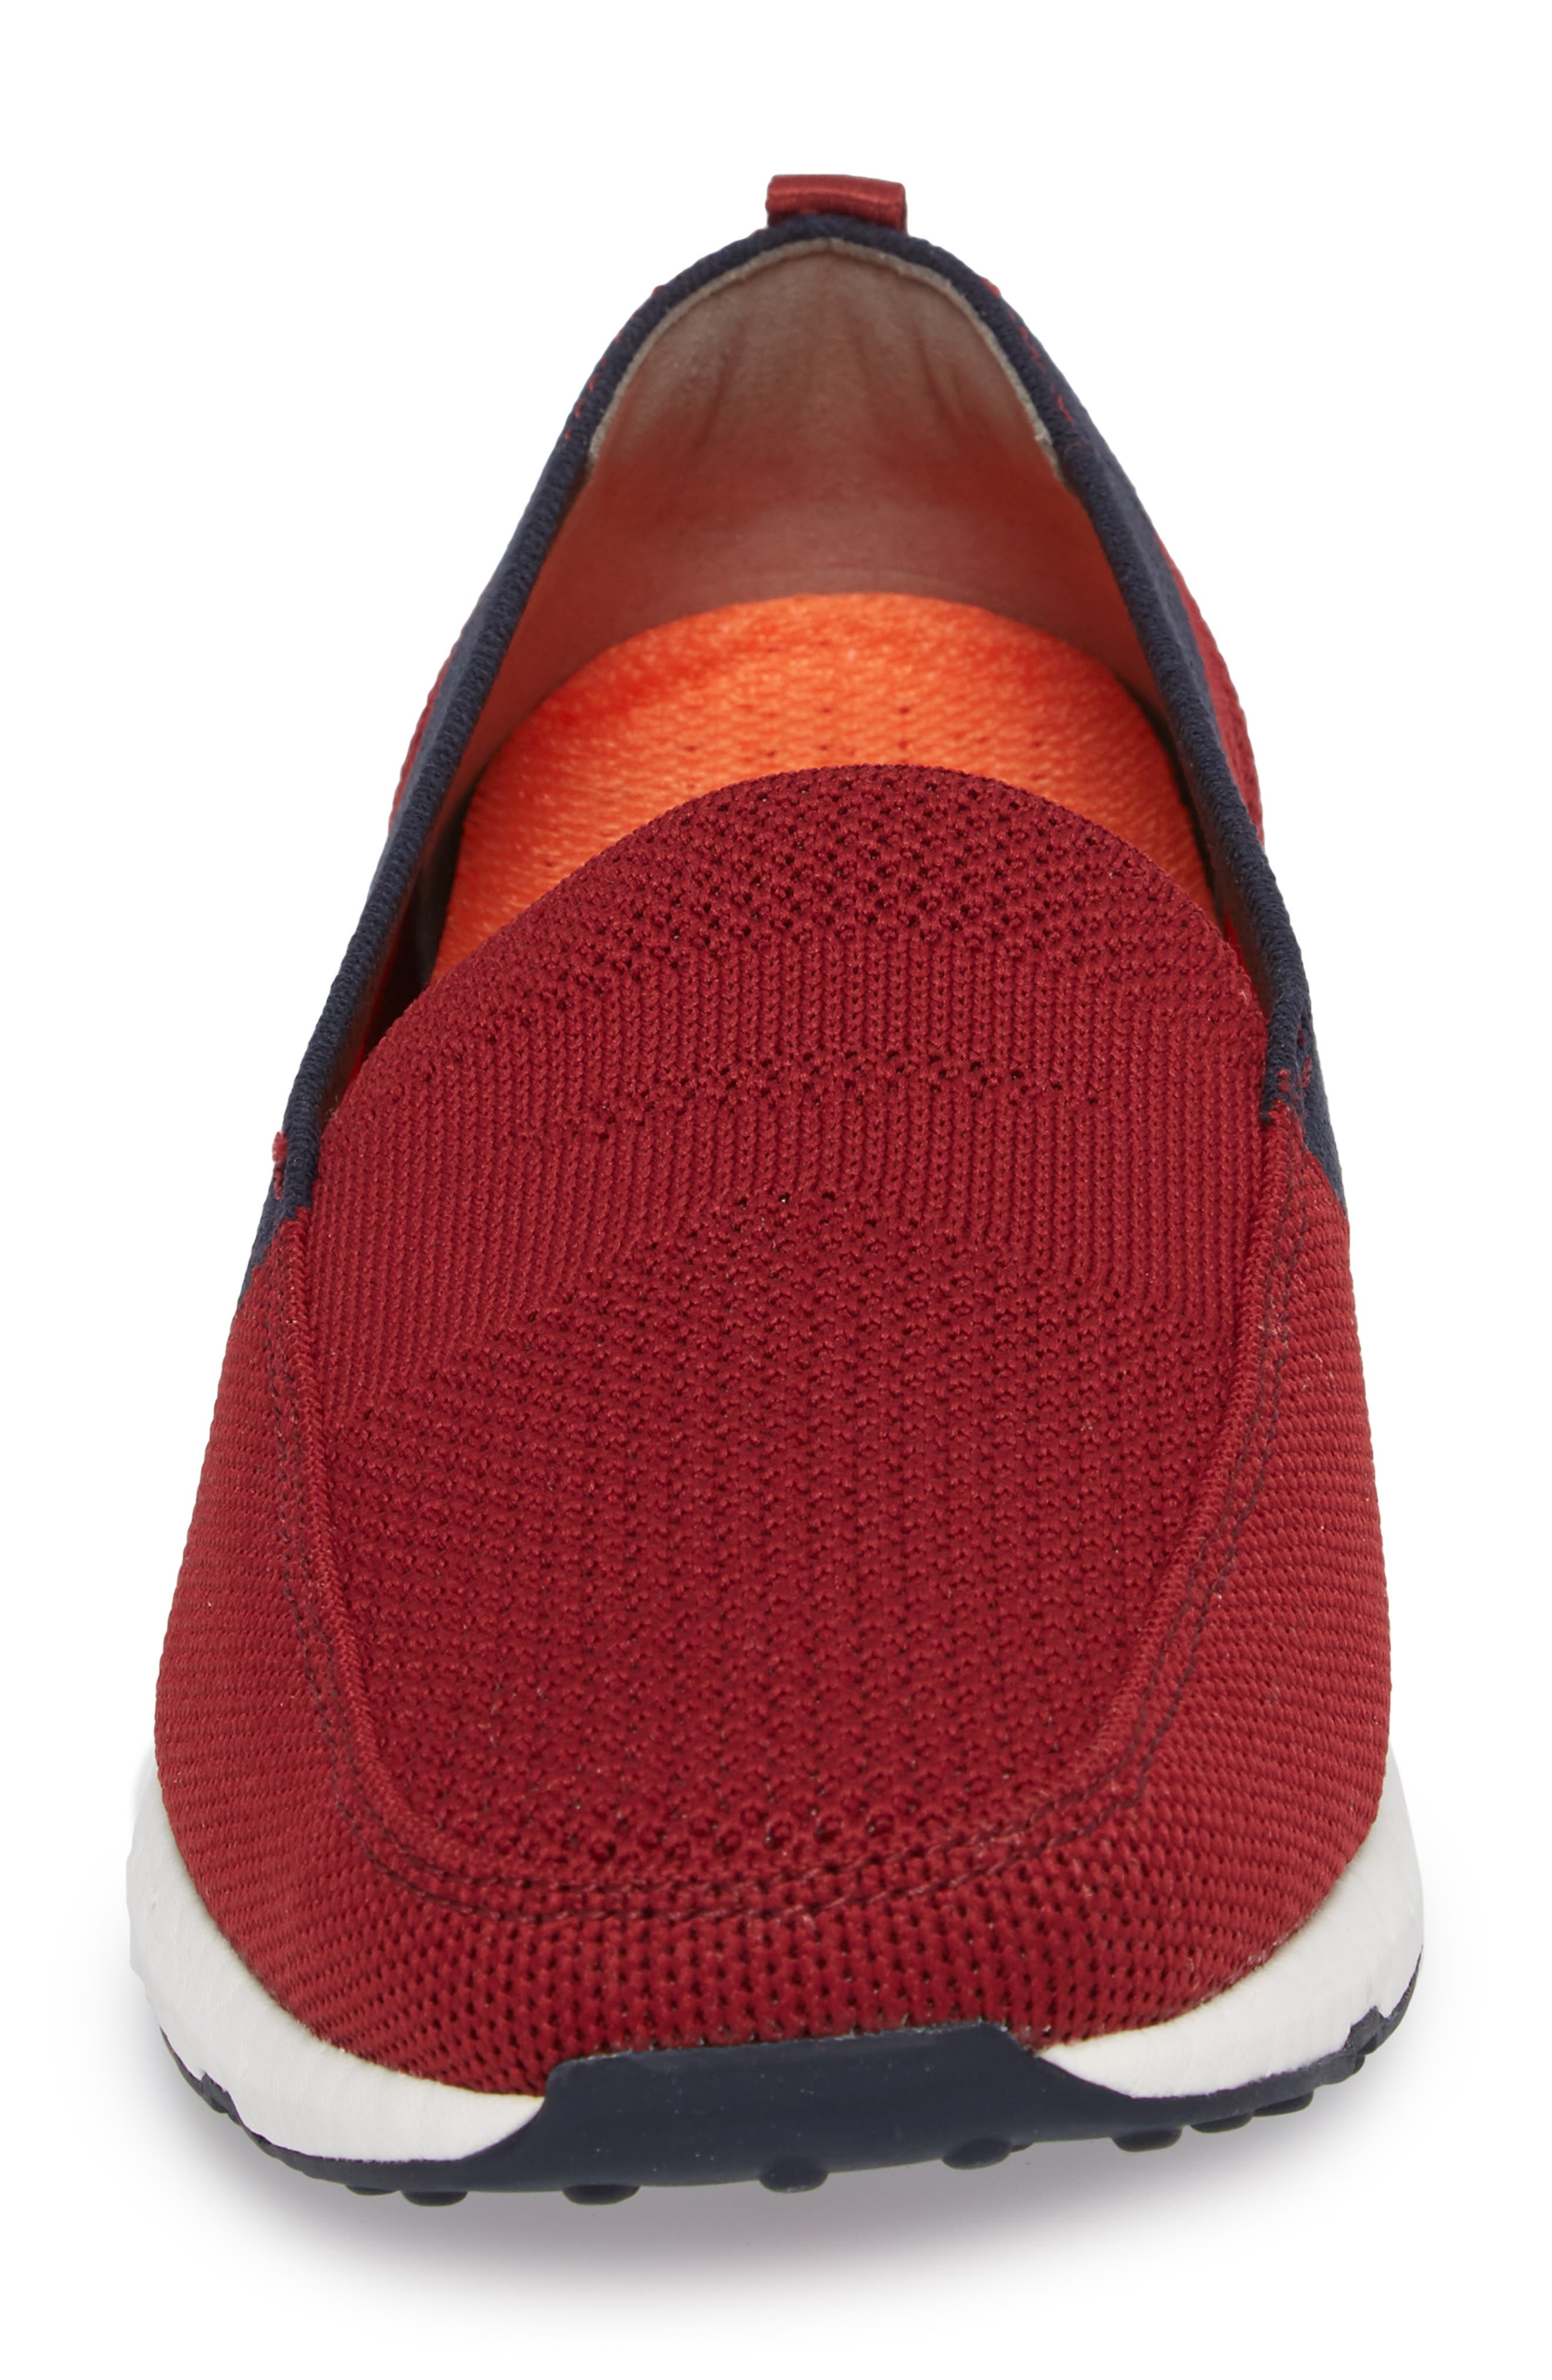 Breeze Leap Penny Loafer,                             Alternate thumbnail 4, color,                             Deep Red/ Navy